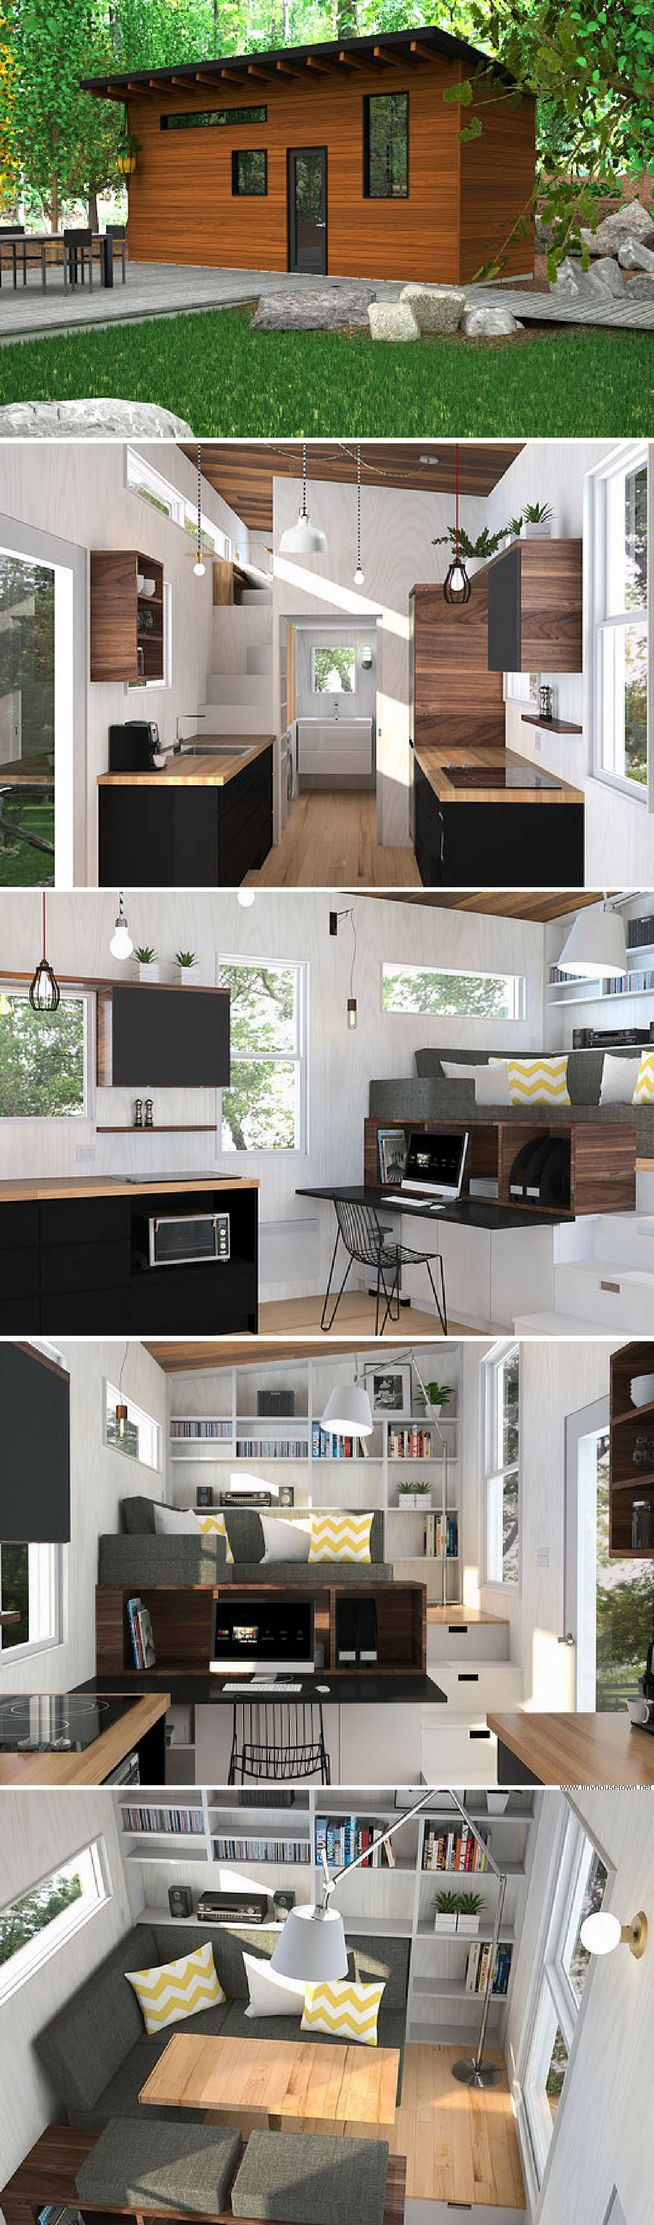 Best 25+ Tiny house plans ideas on Pinterest | Small home plans ...